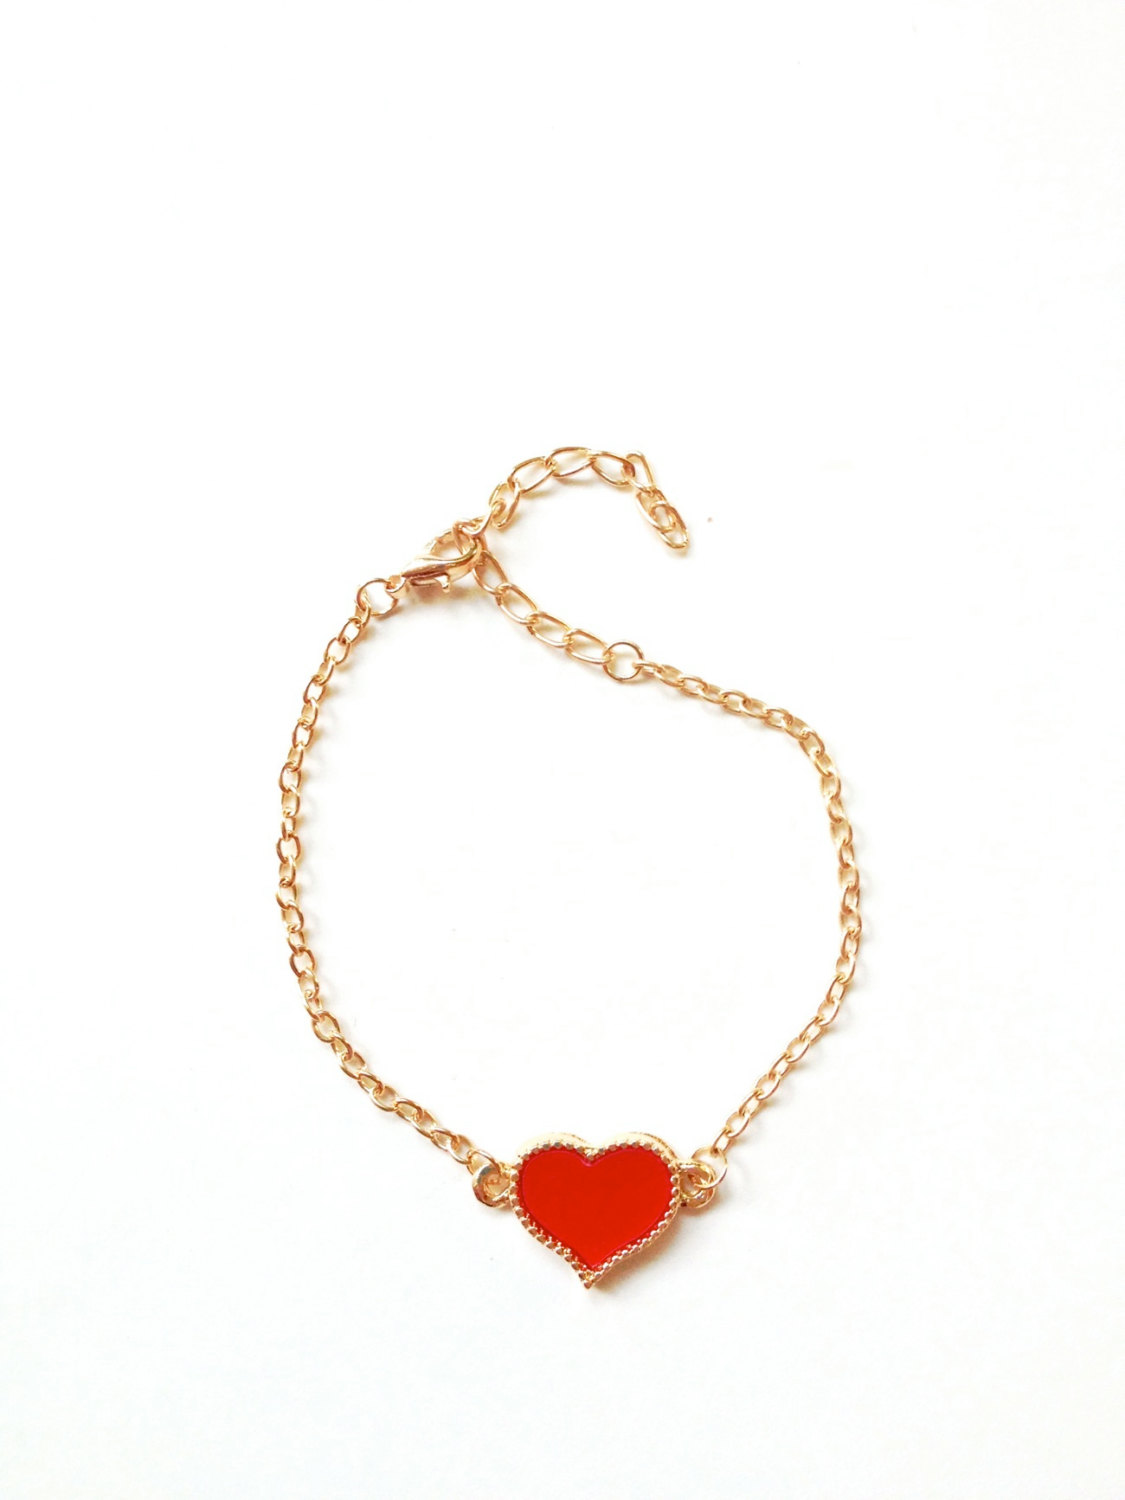 string product plated from accessories jewelry wholesale gold alluvial bracelet fire red lucky xuexinglai